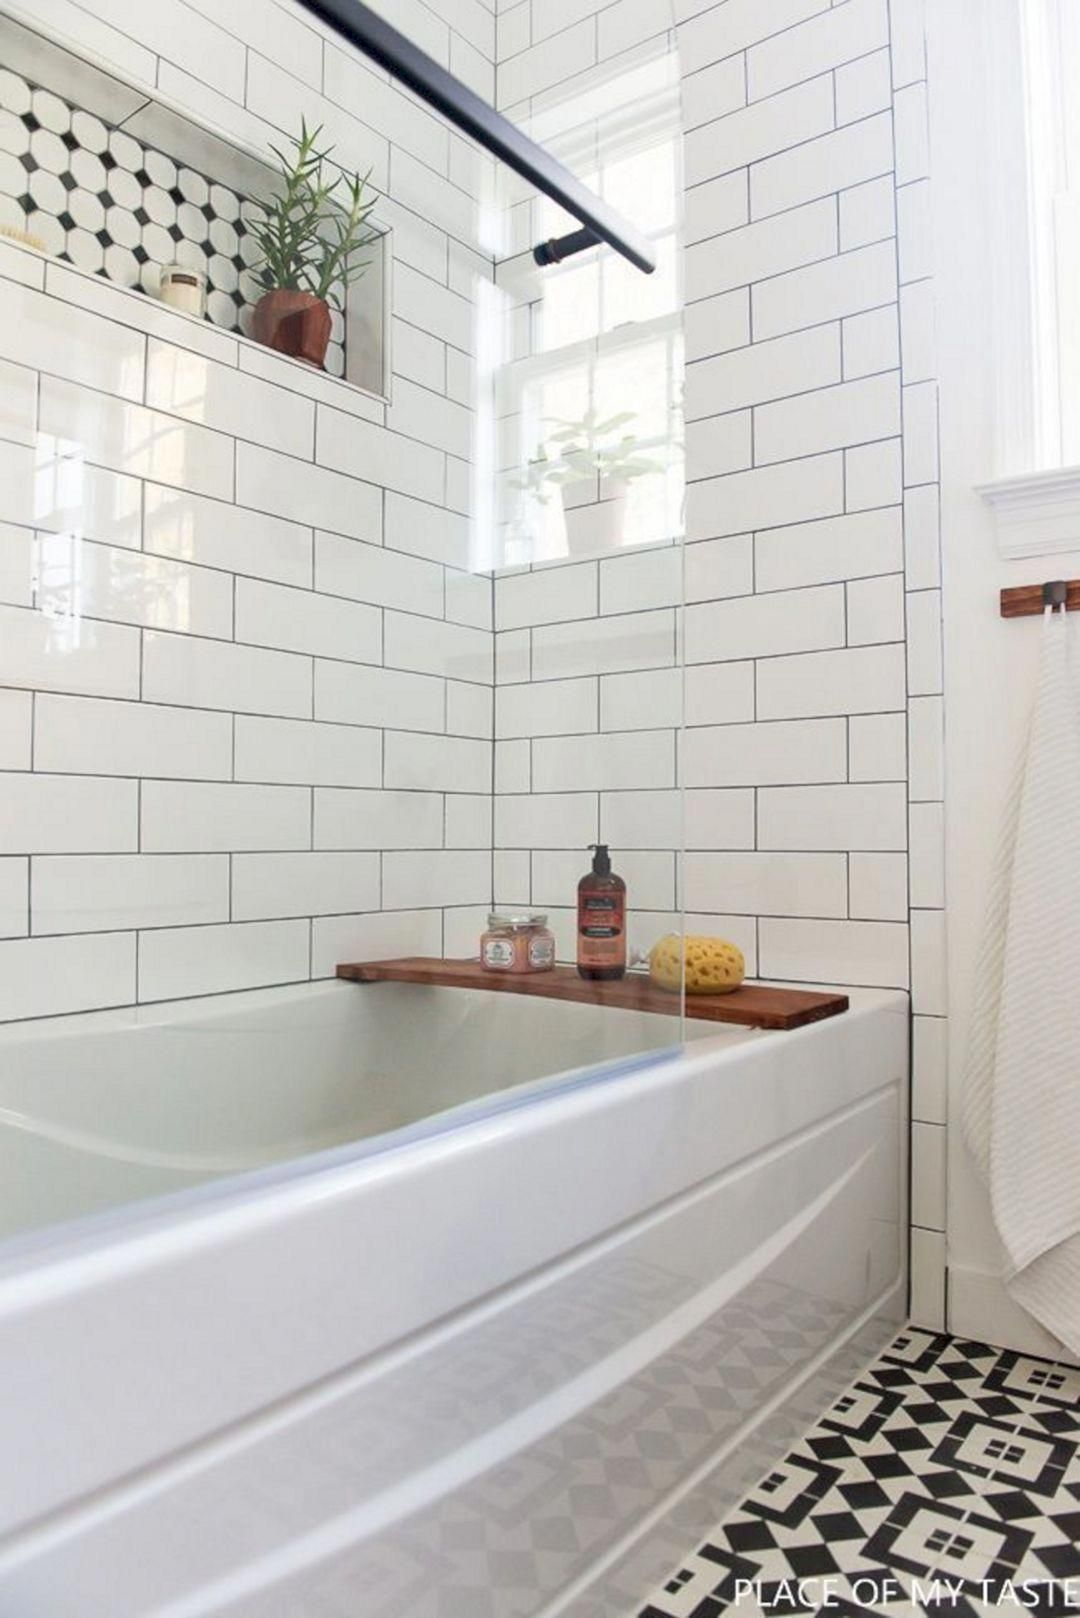 Have You Considered The Idea For Something Else Restroom Remodel Ideas White Subway Tile Bathroom Classic Bathroom Design White Bathroom Tiles